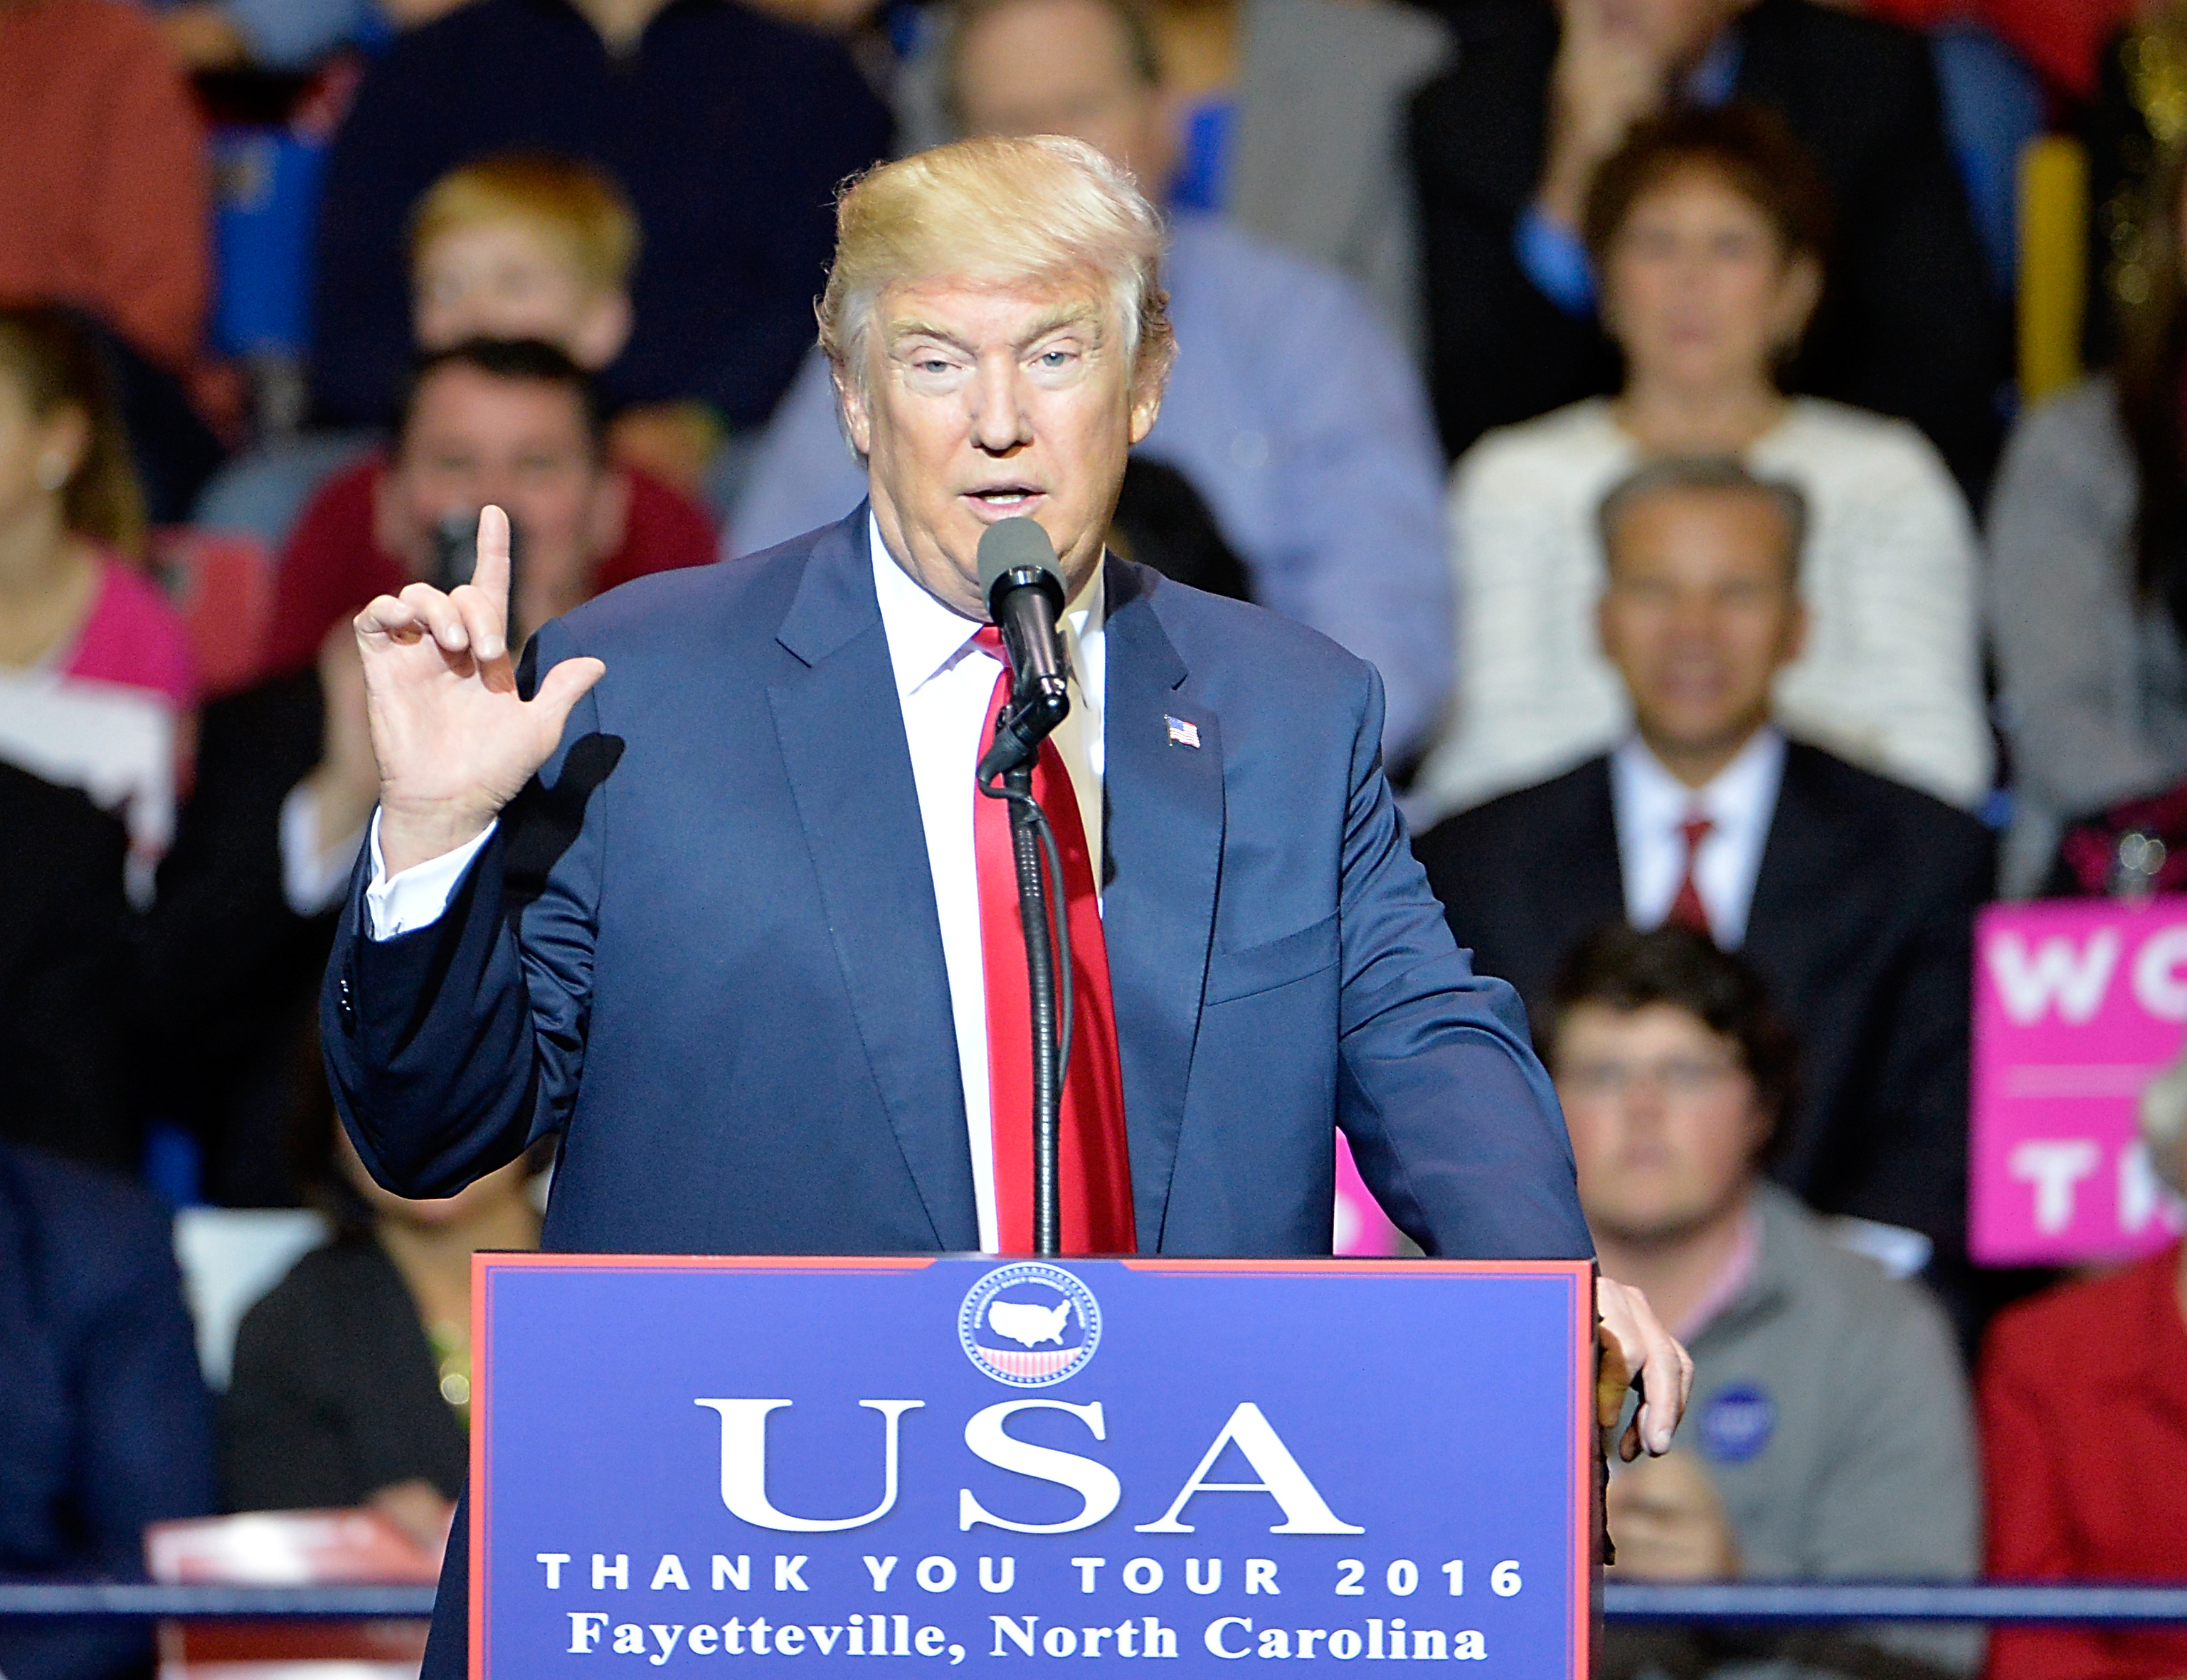 President-elect Donald Trump addresses an audience at Crown Coliseum on December 6, 2016 in Fayetteville, North Carolina.